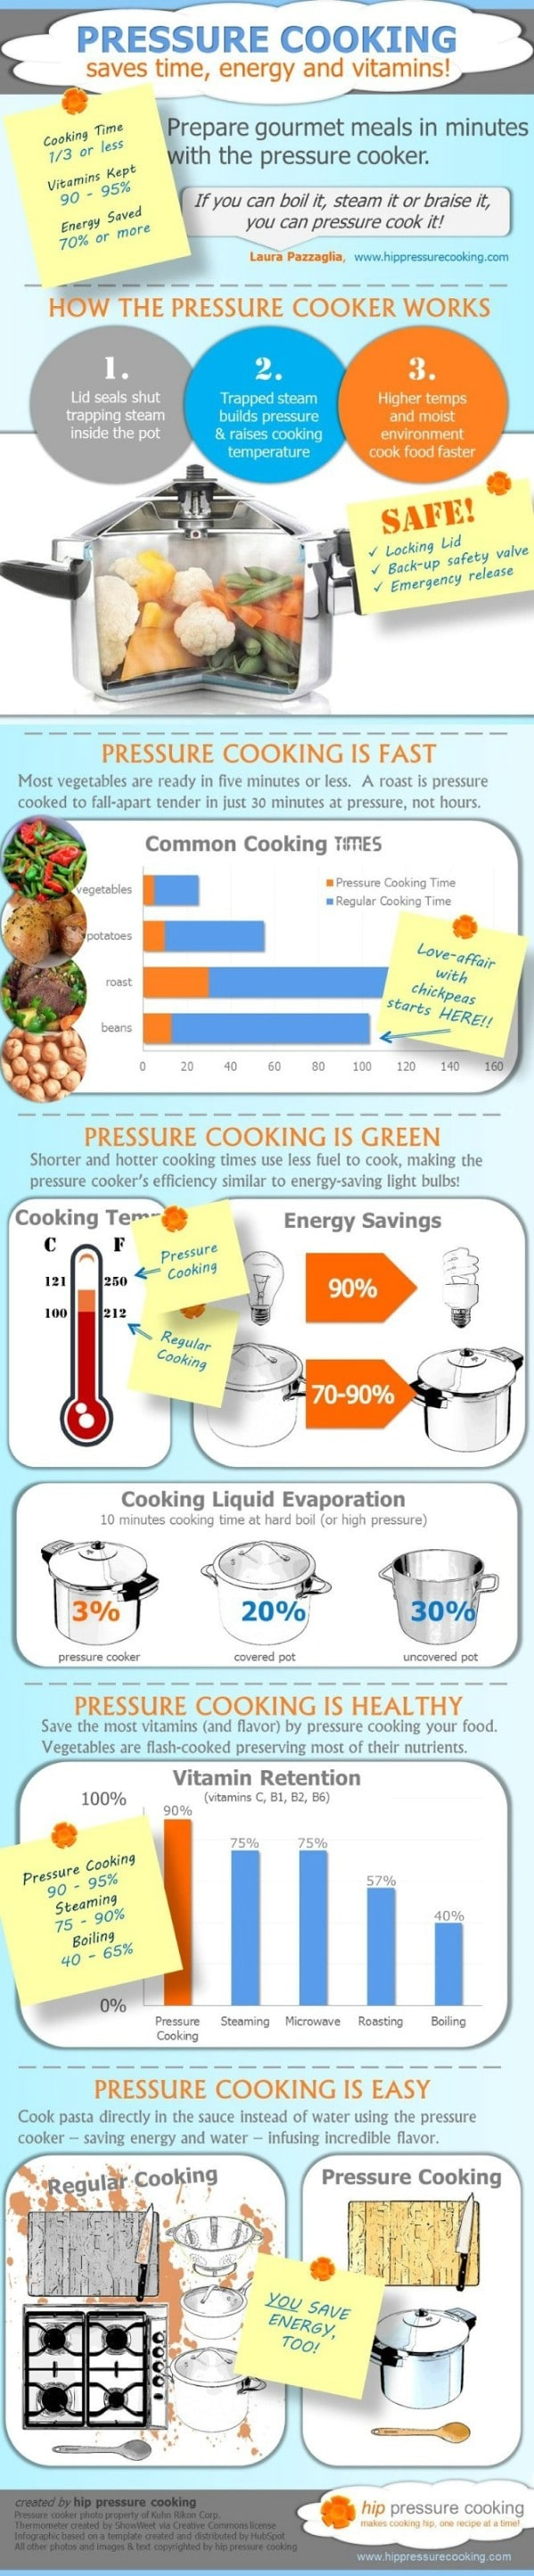 Pressure Cooking - 18 Professional Kitchen Infographics to Make Cooking Easier and Faster